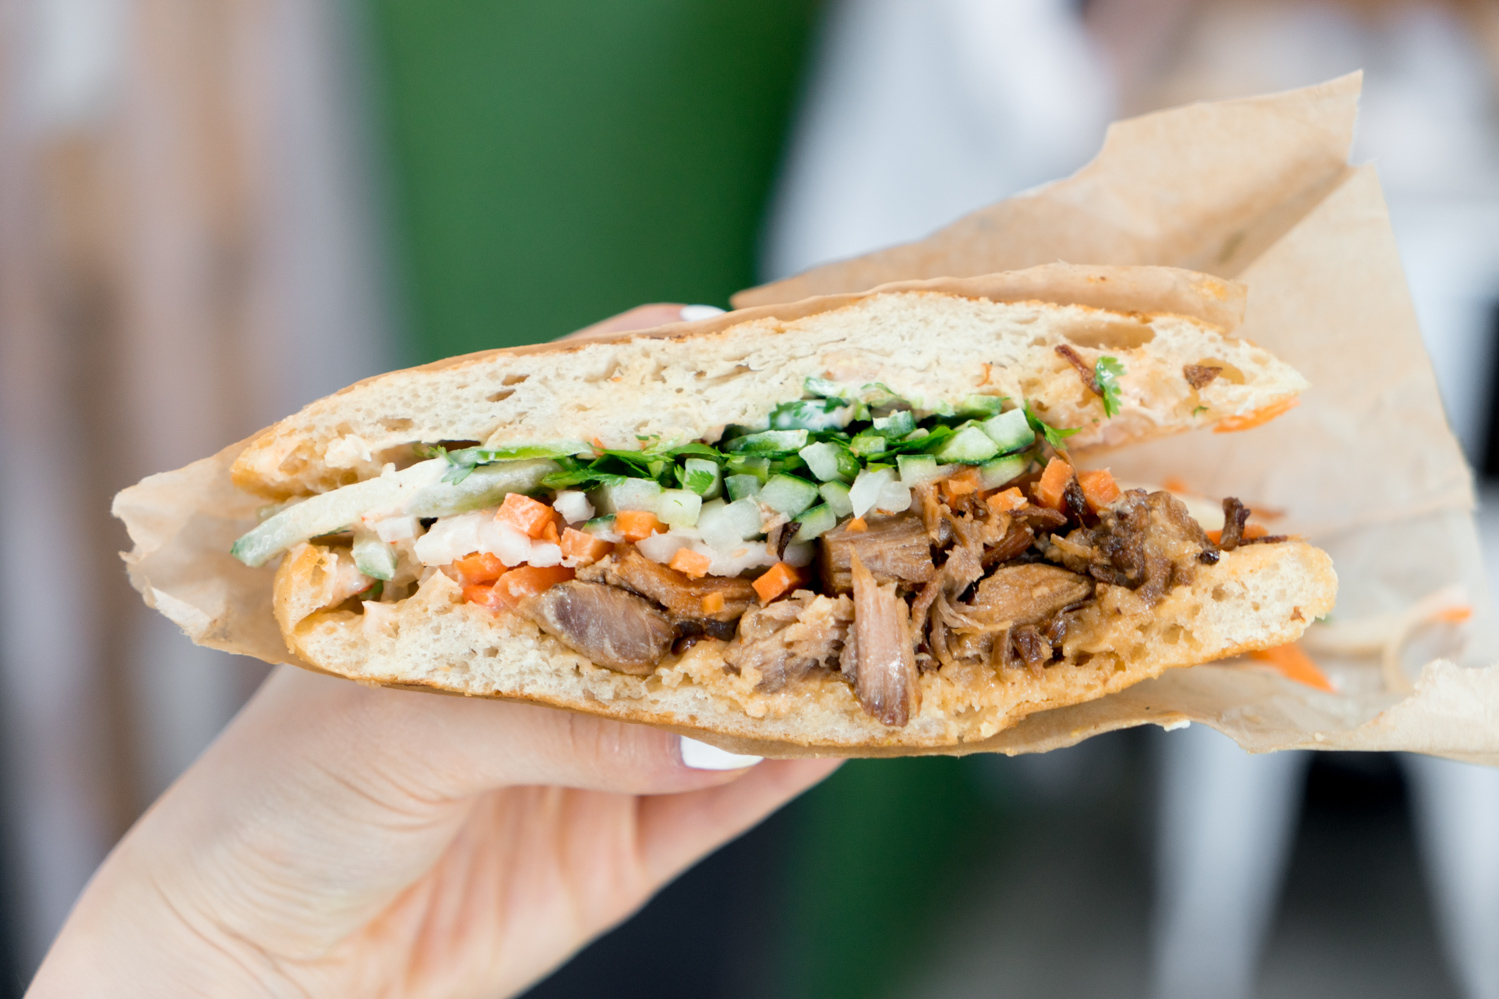 Kurobuta Pork Belly Banh Mi  ($10.95) - playful take on the popular Vietnamese sandwich with braised, caramelized Kurobuta pork belly, housemade pickled daikon & carrots, cilantro, cucumbers, jalapenos, chili aioli on panini-pressed ciabatta